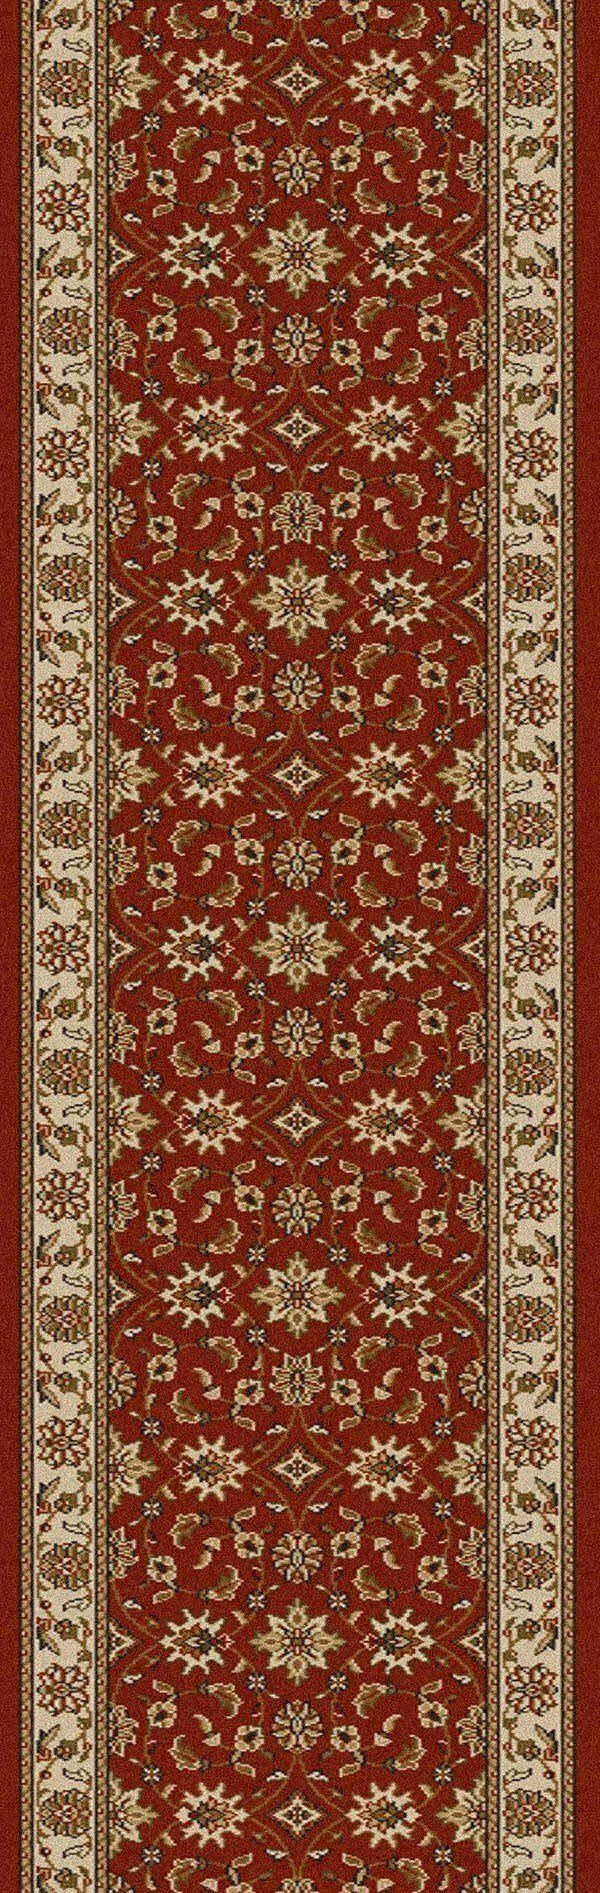 Rugs Direct Cagliari Oriental Rugs Rugs Direct